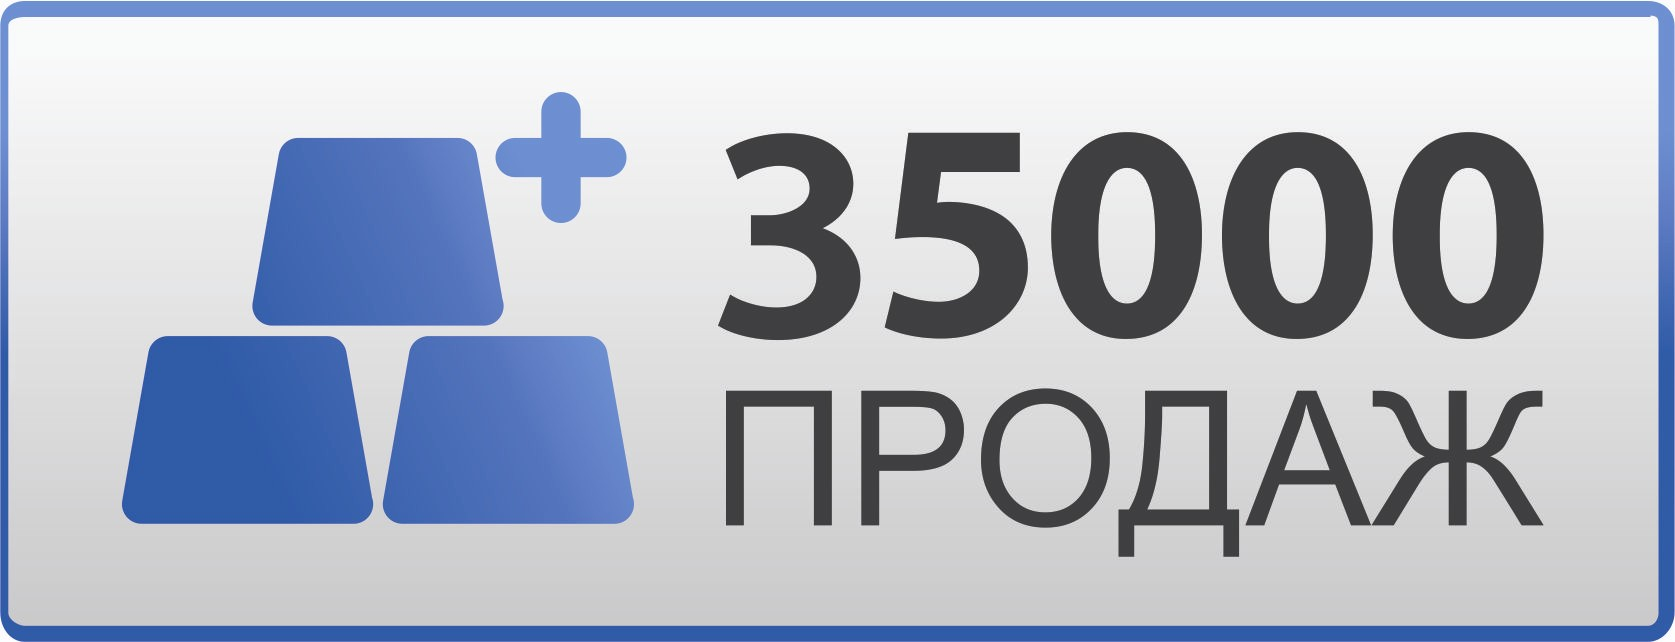 iTunes Gift Card (Russia) 7500 rubles + Gift